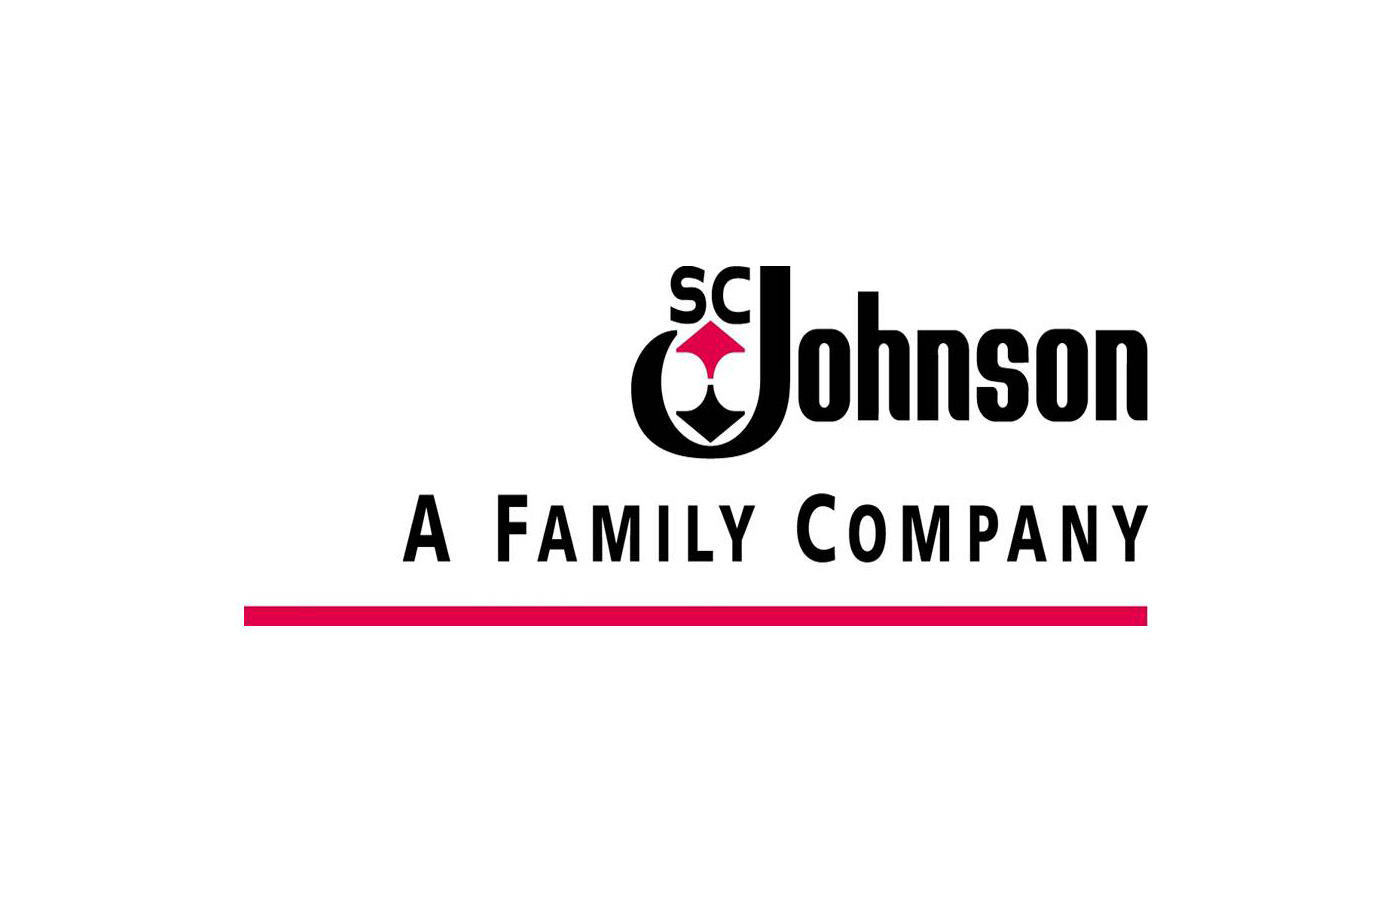 company analysis johnson and johnson In-depth view of key statistics and finances for johnson & johnson (jnj) on msn   morningstar consensus estimate data growth rate (%) company industry.